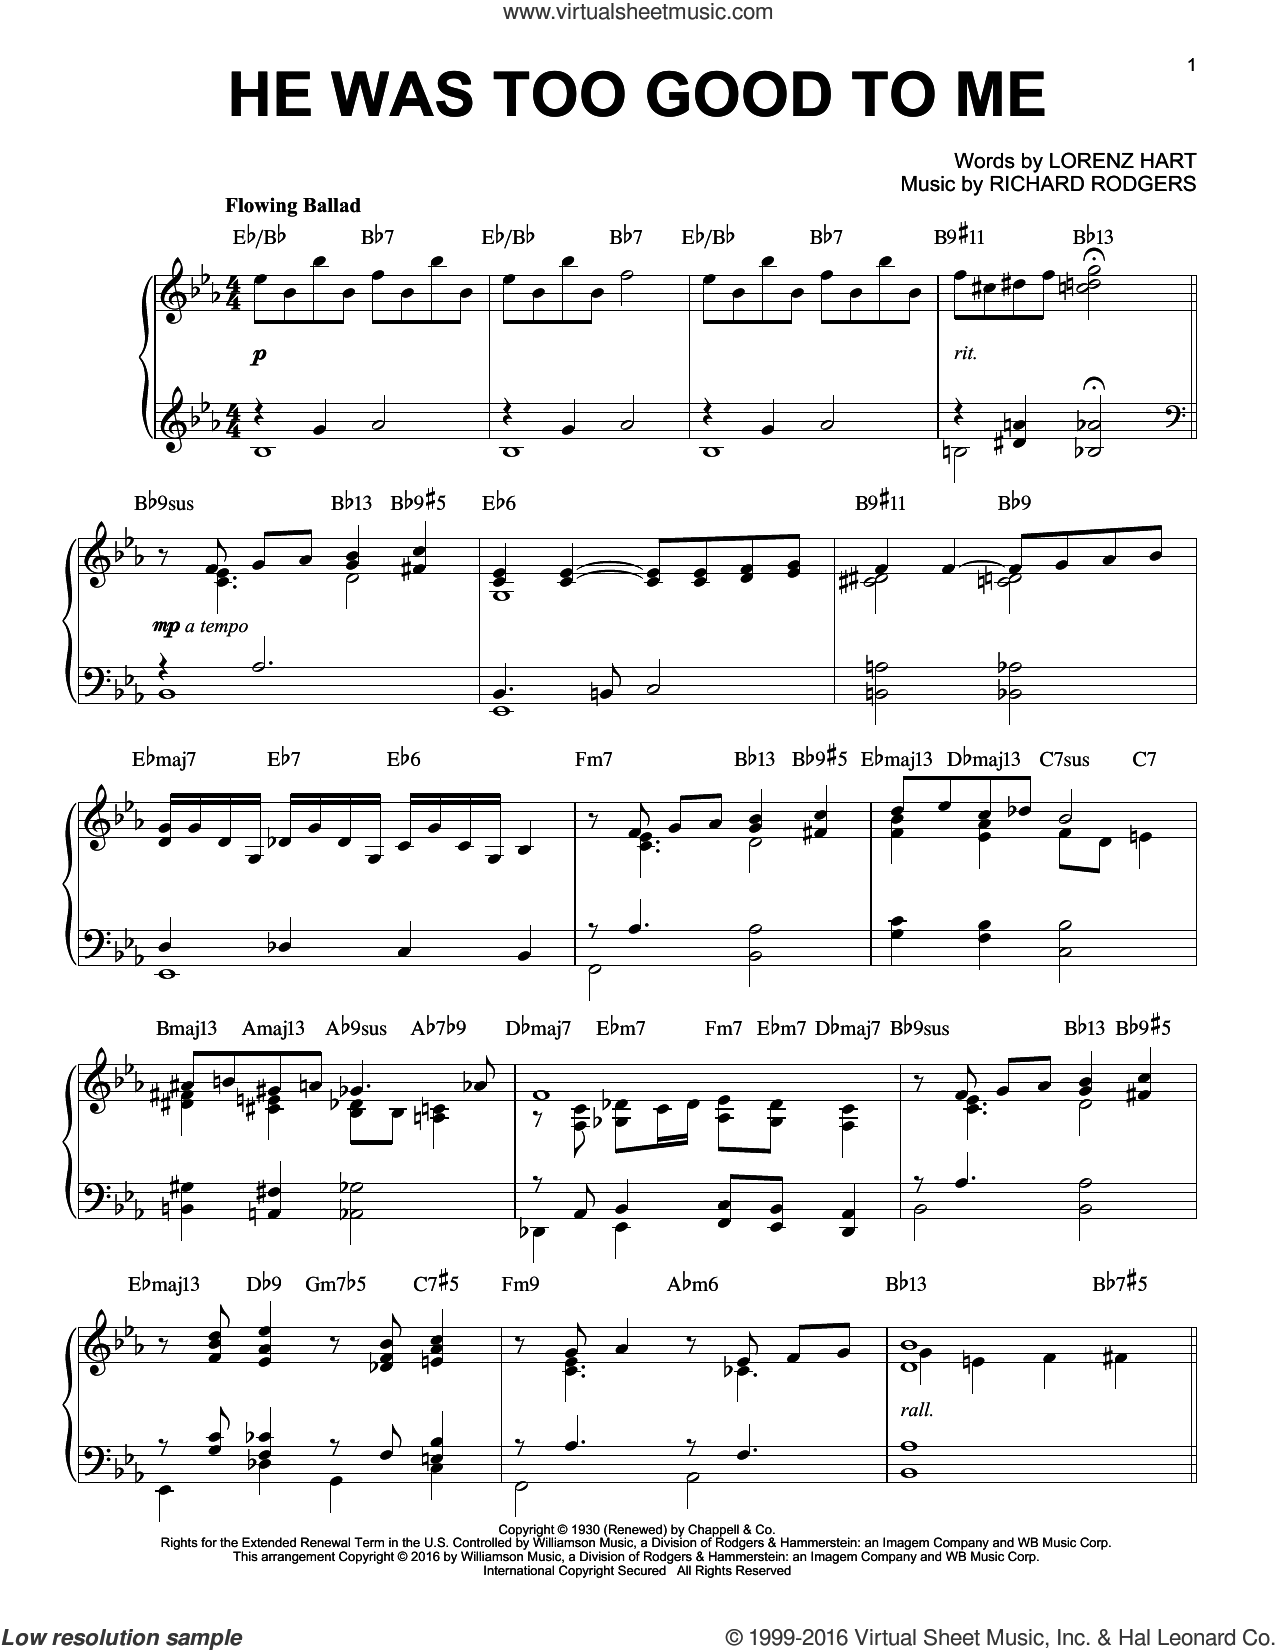 He Was Too Good To Me sheet music for piano solo by Rodgers & Hart, Lorenz Hart and Richard Rodgers, intermediate skill level